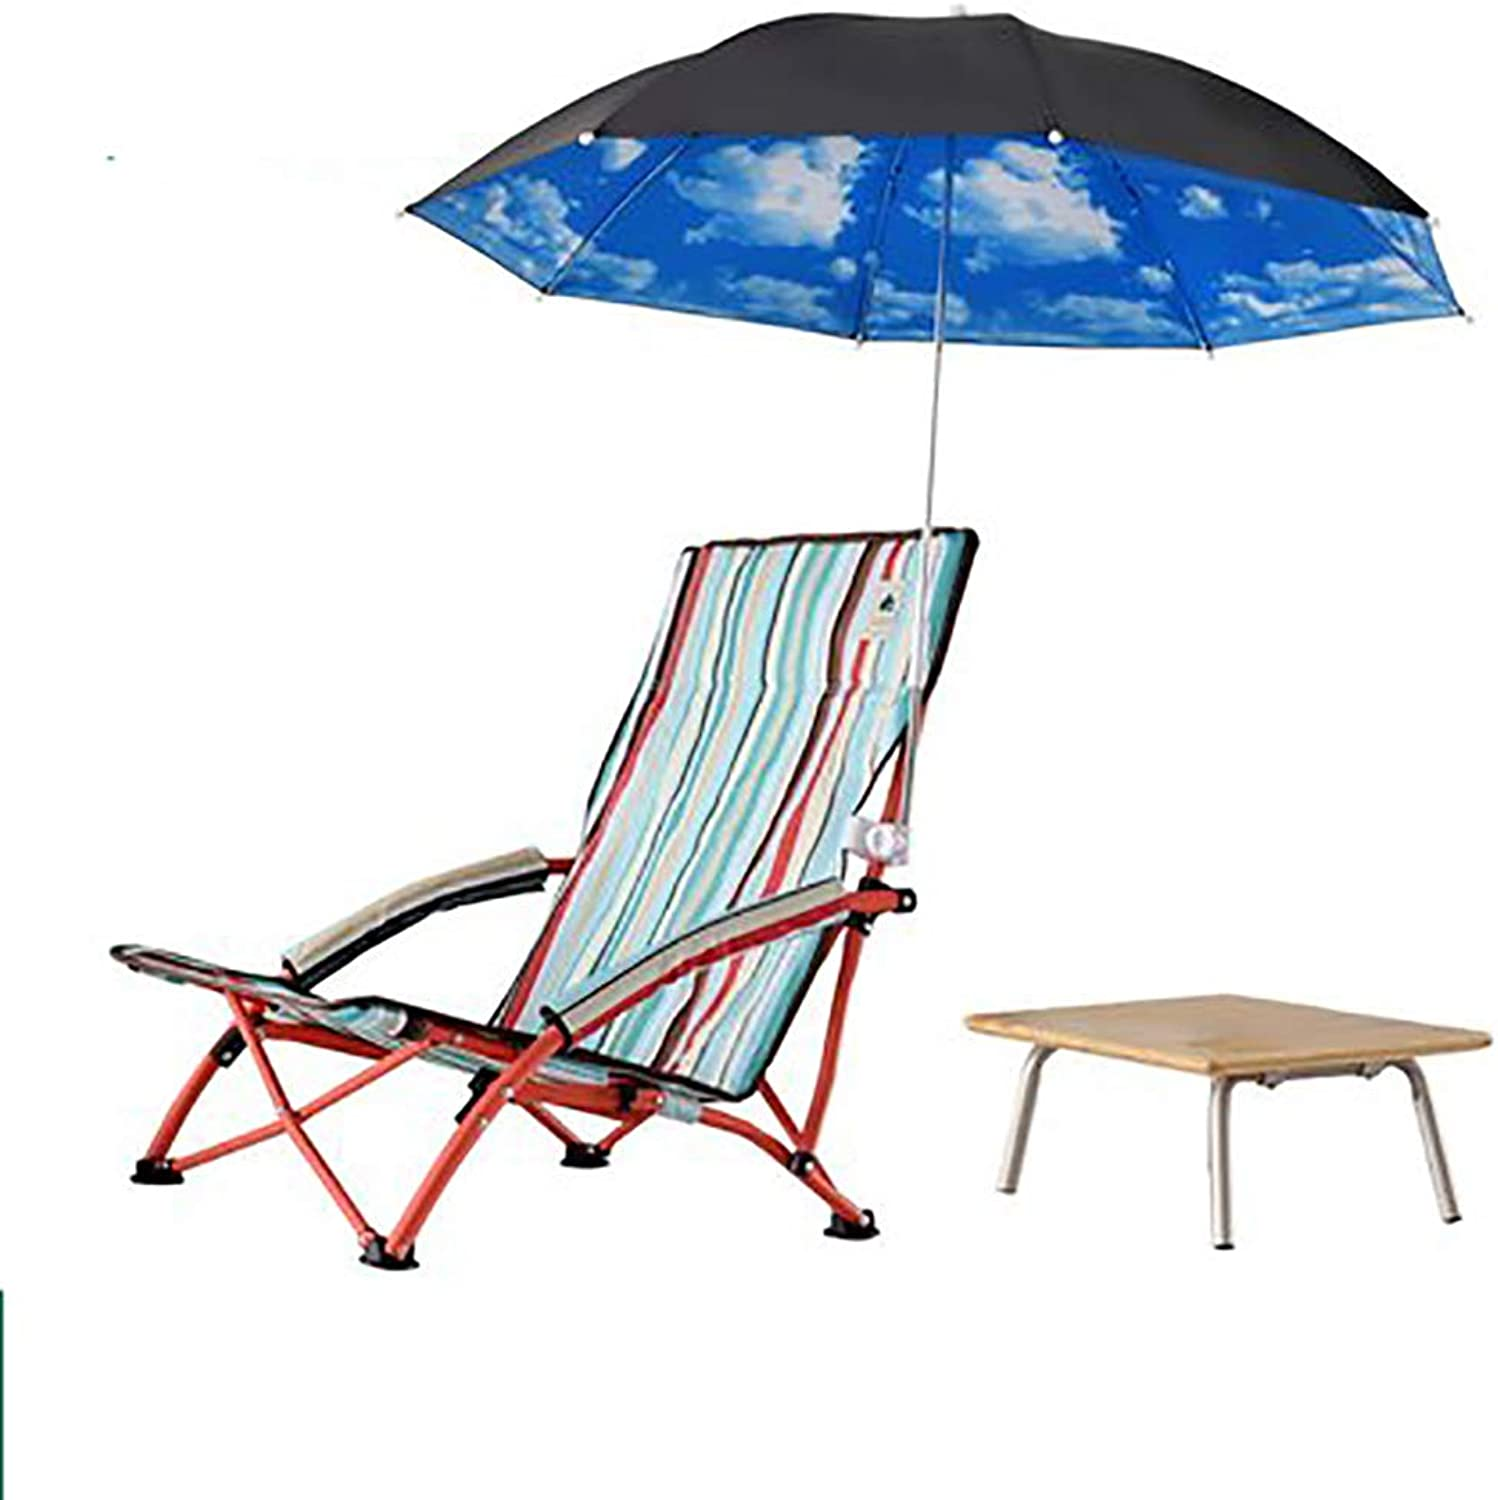 Outdoor Folding Beach Chair, Mini with armrest Cup Holder Umbrella Portable Low Sitting Back Fishing Chair, for Camping Picnic Barbecue Garden Sketch, with Storage Bag